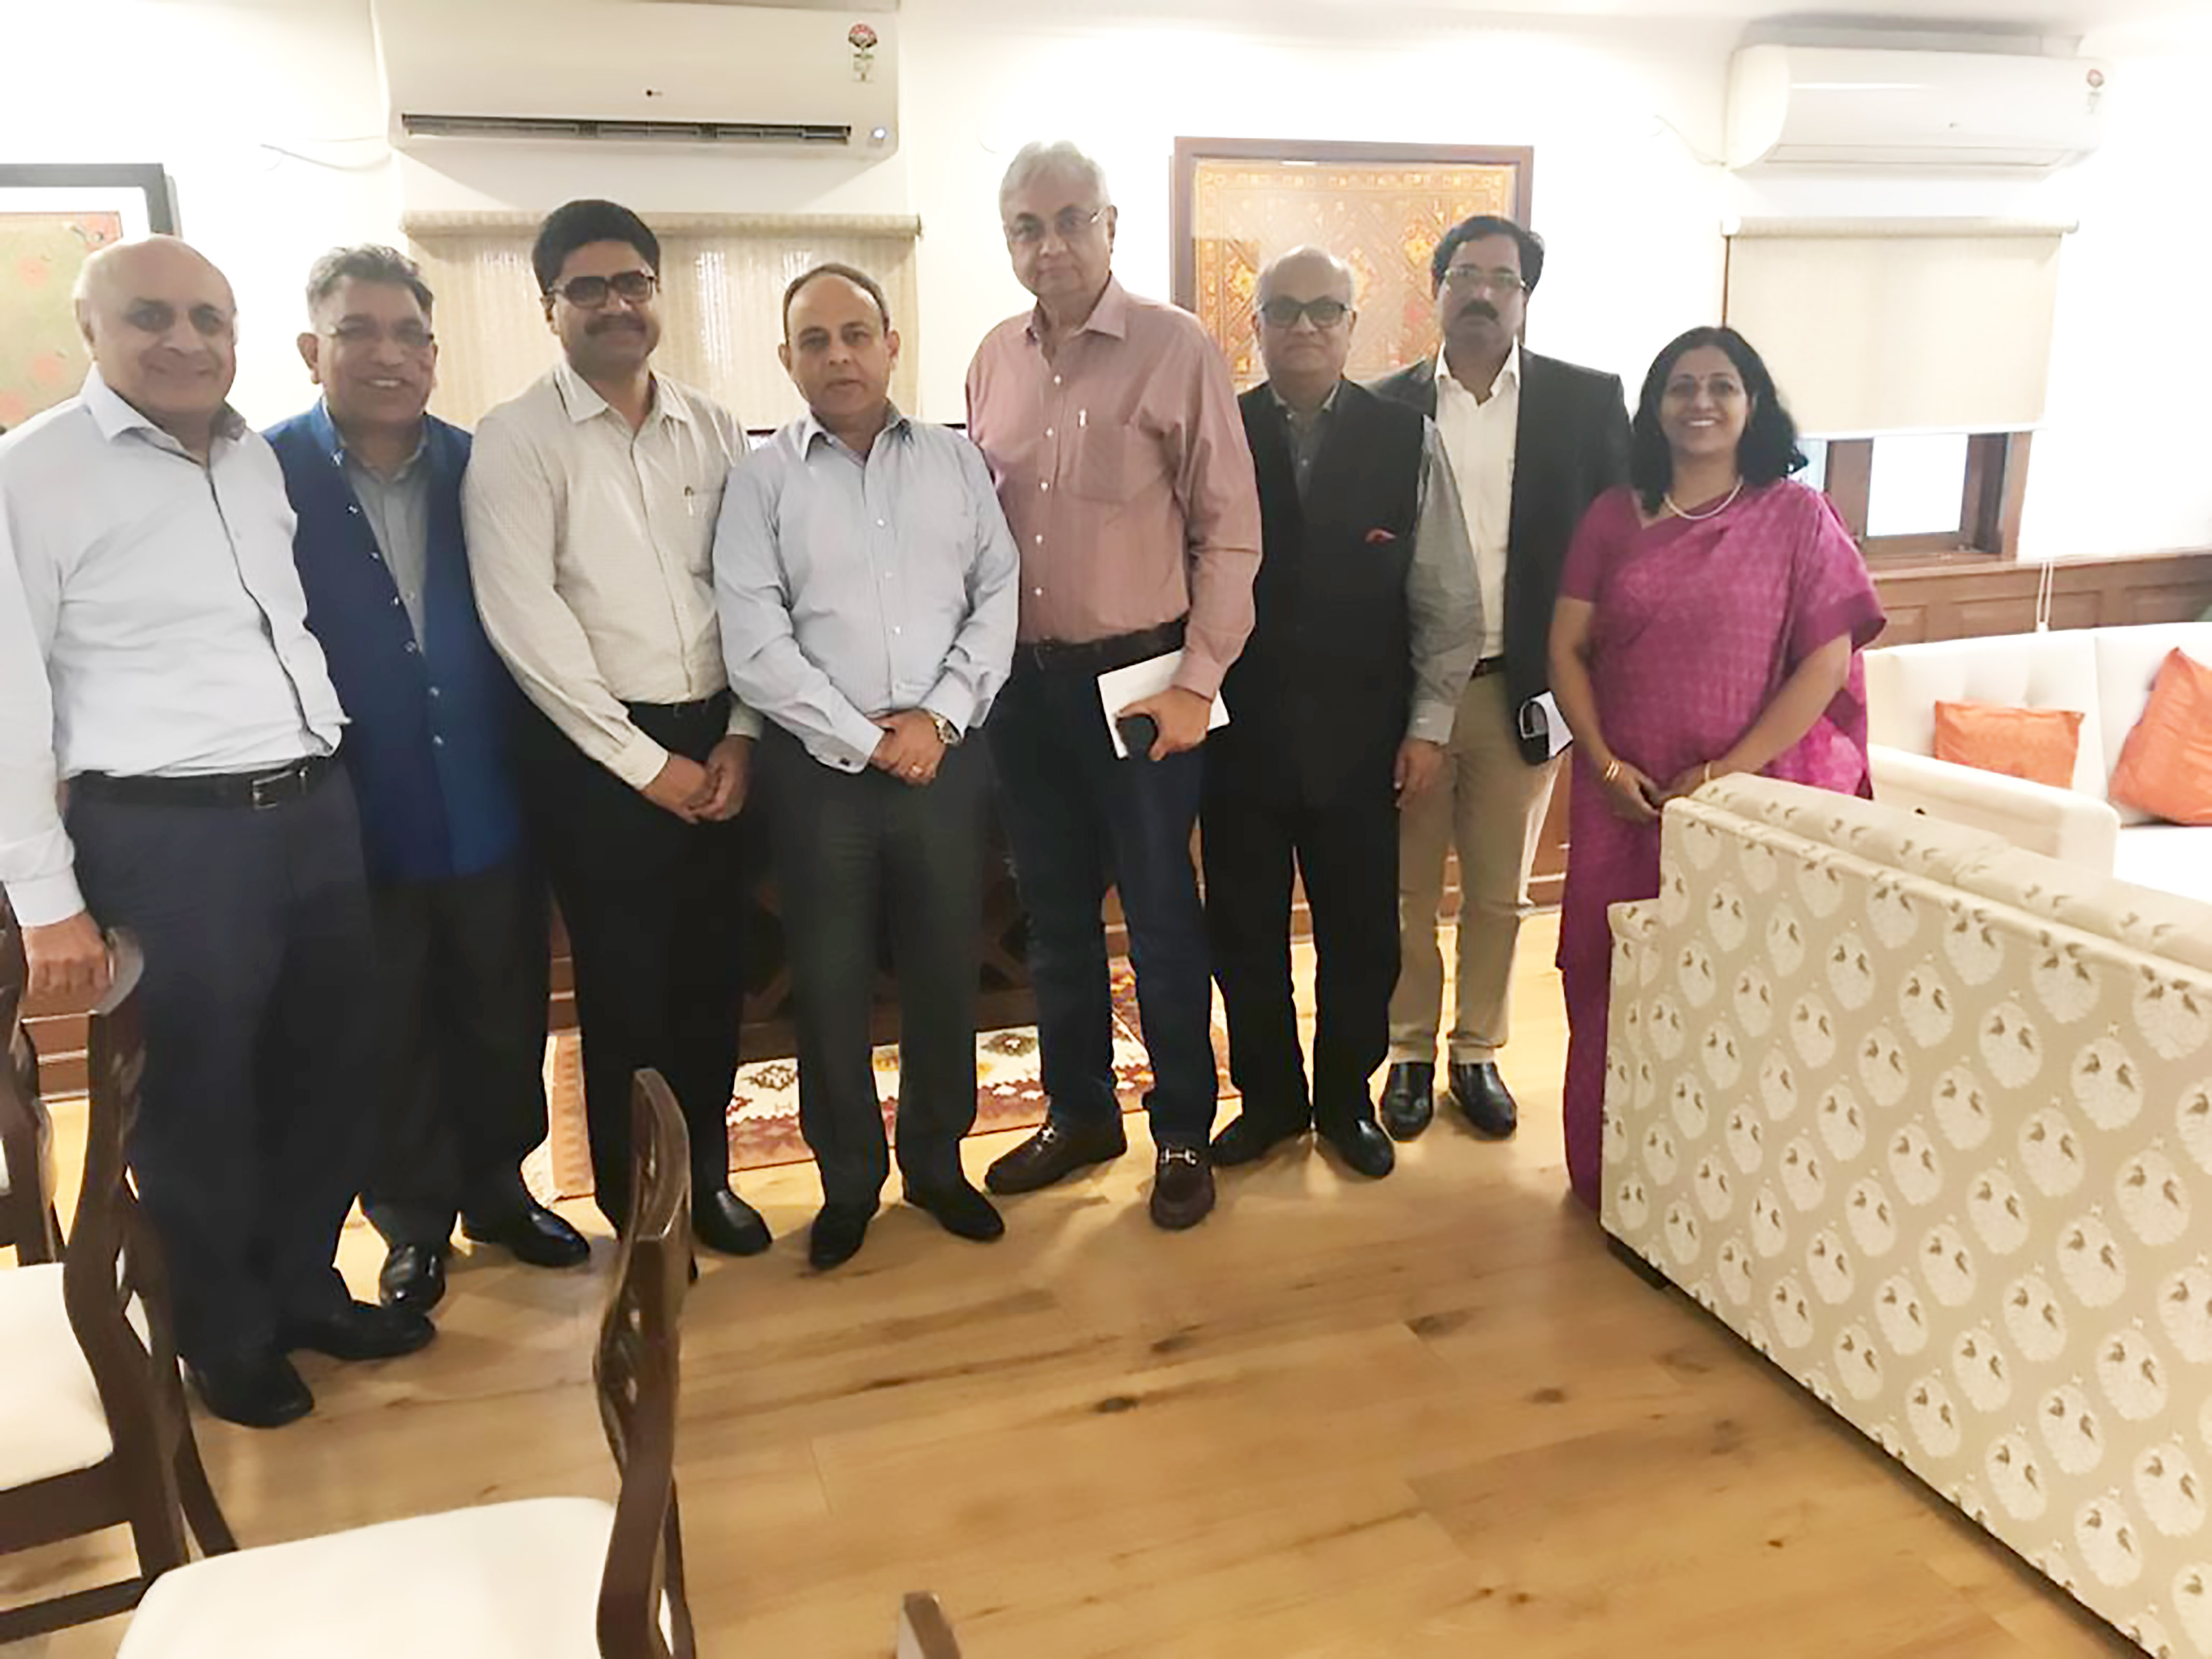 National Committee on Textiles and Clothing (NCTC) in a meeting with Shri Ravi Capoor, Secretary, Ministry of Textiles on 4th October 2019 in New Delhi